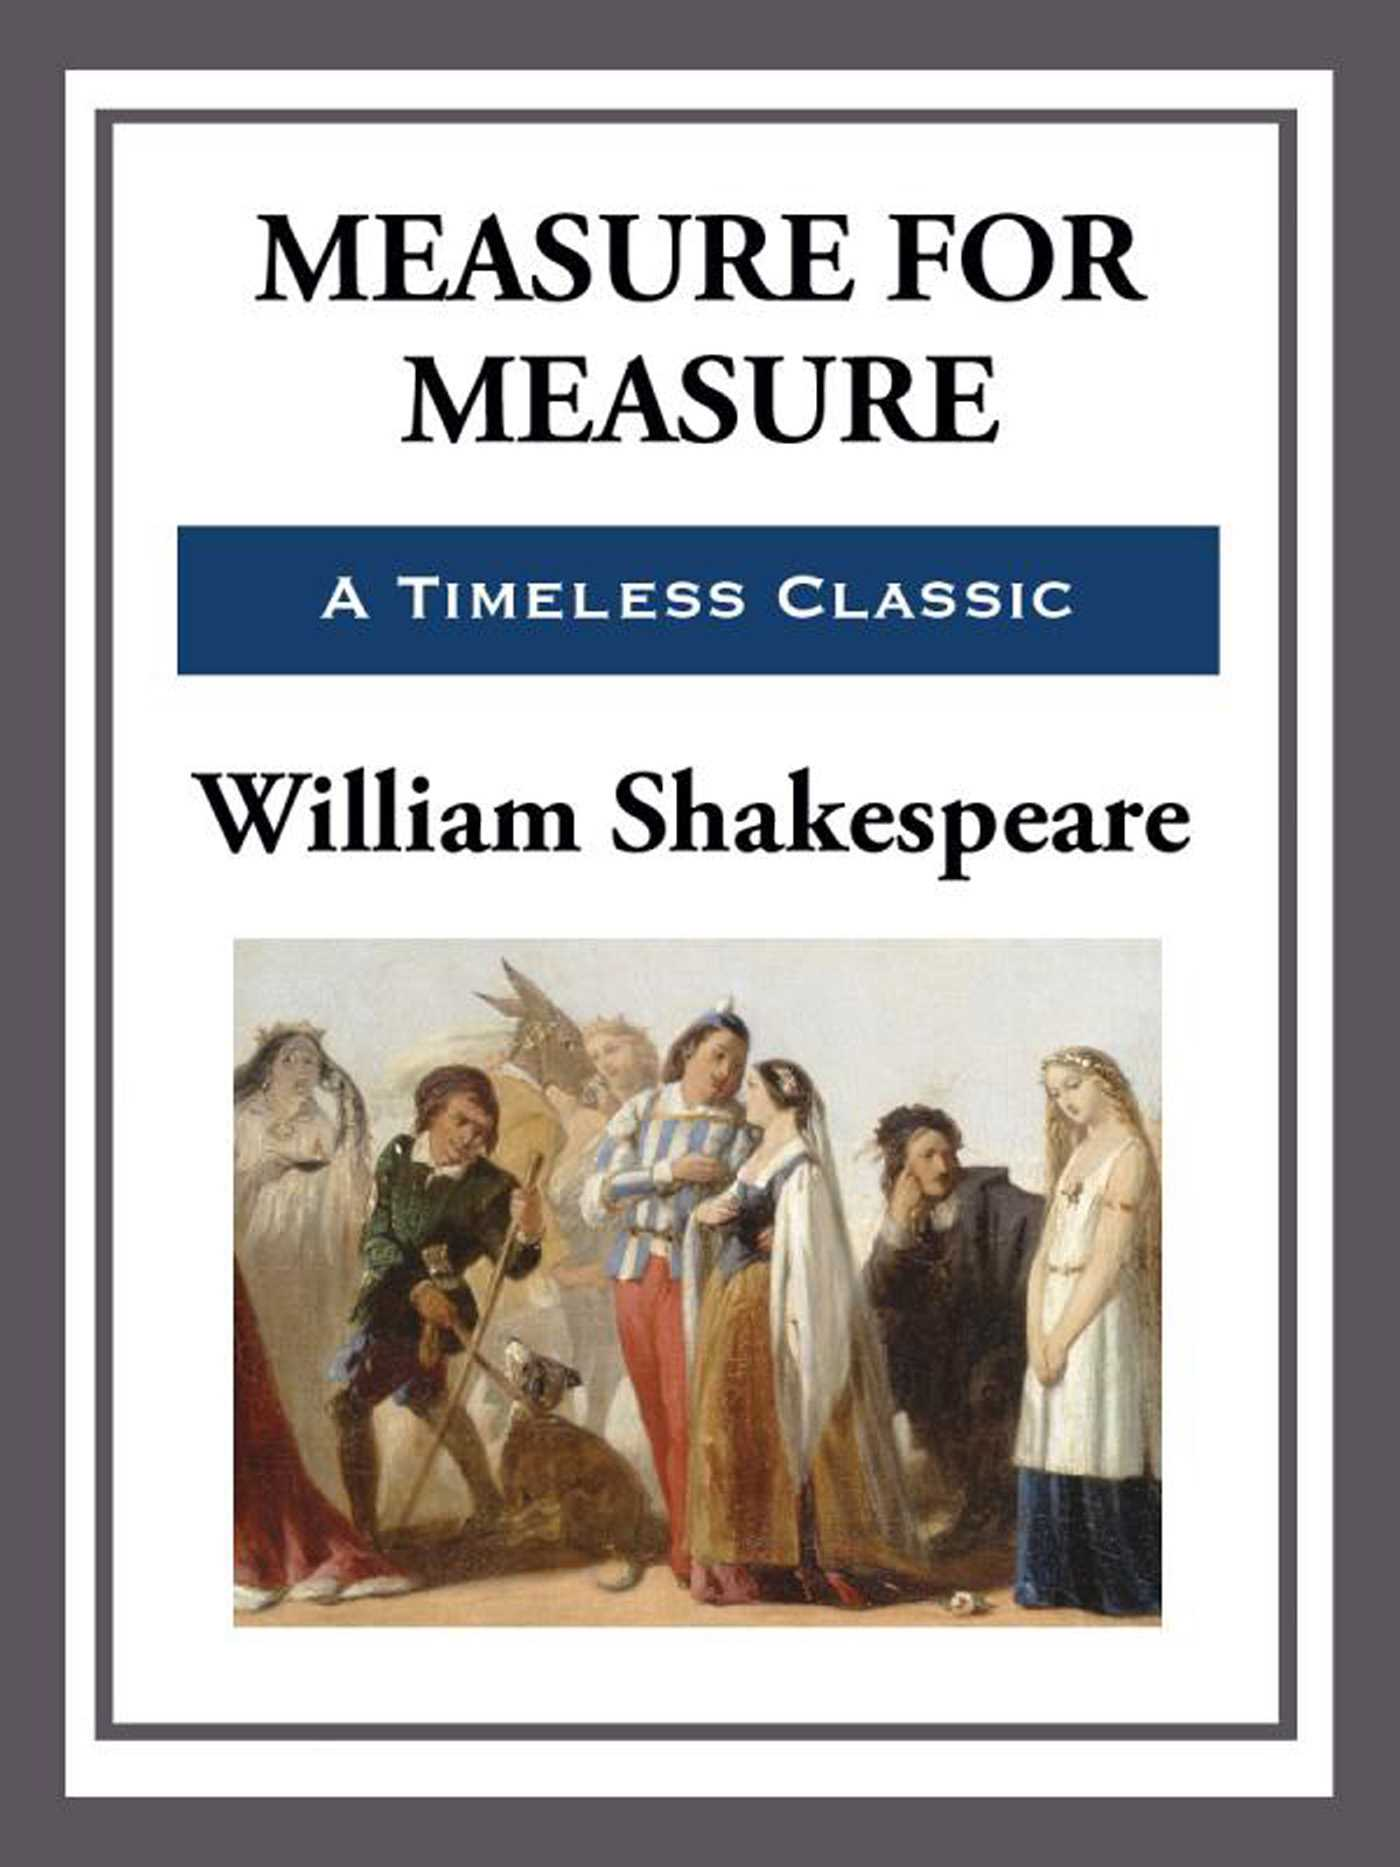 Measure for measure 9781625589699 hr